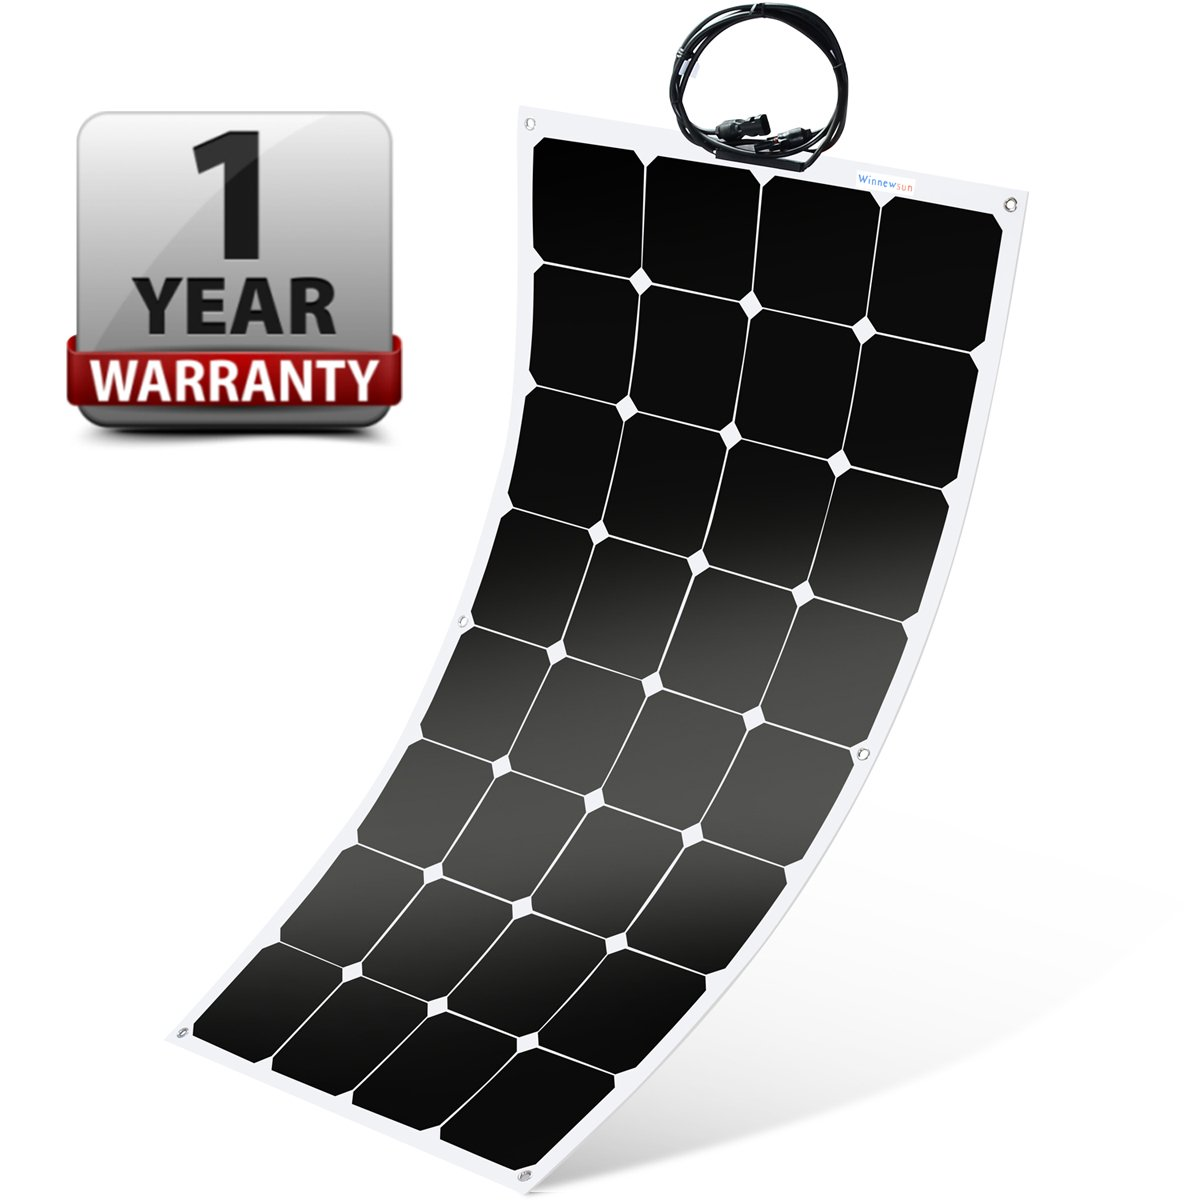 Flexible Solar Panel ,SunPower Solar Panel 100w 18V 12V ,Lightweight Flexible Solar Power Panels for RV Boat Truck Car Van Tent